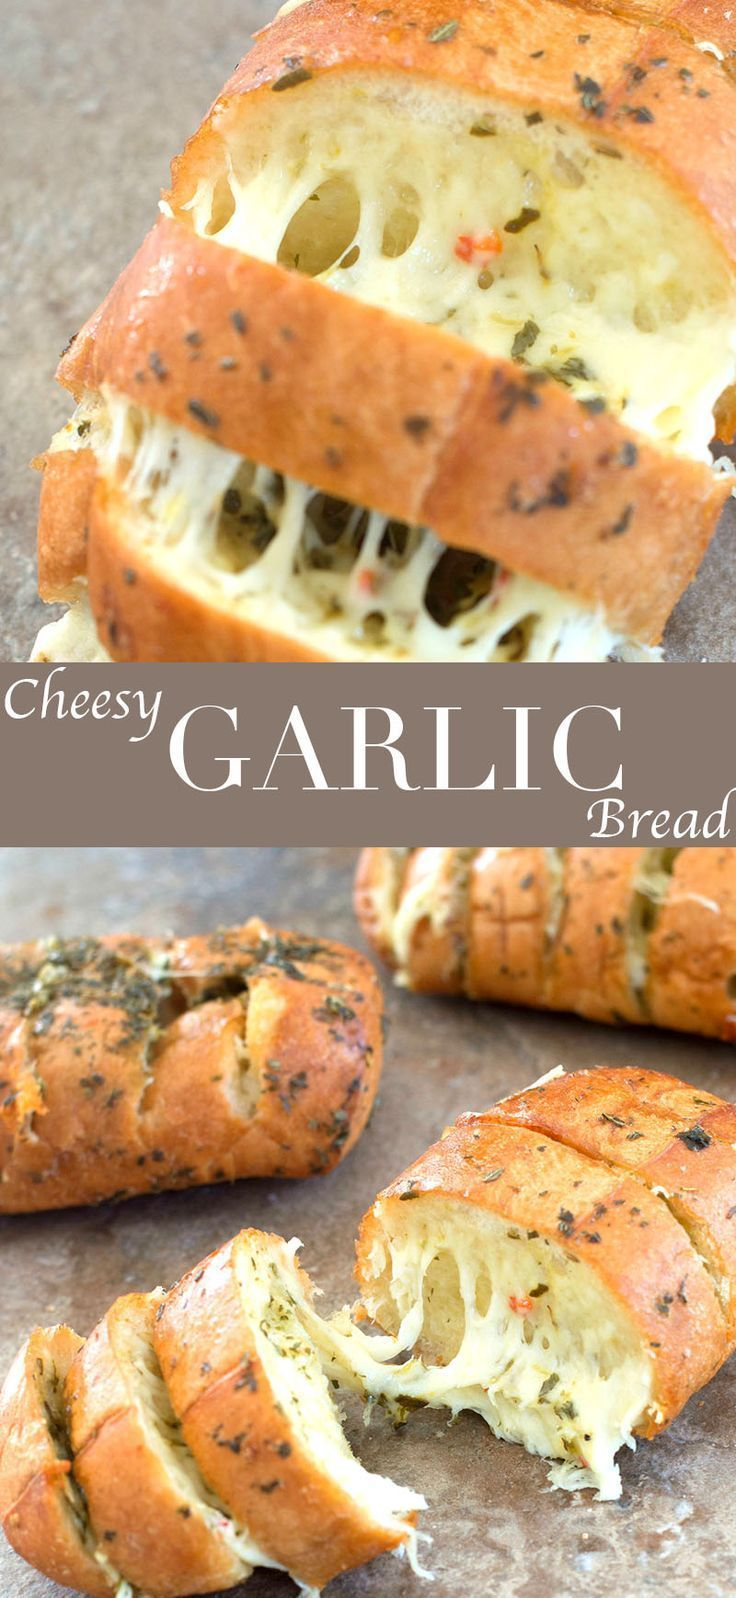 362573 best food bloggers group board images on pinterest kitchens cheesy garlic bread with italian spices apple recipesbest forumfinder Gallery